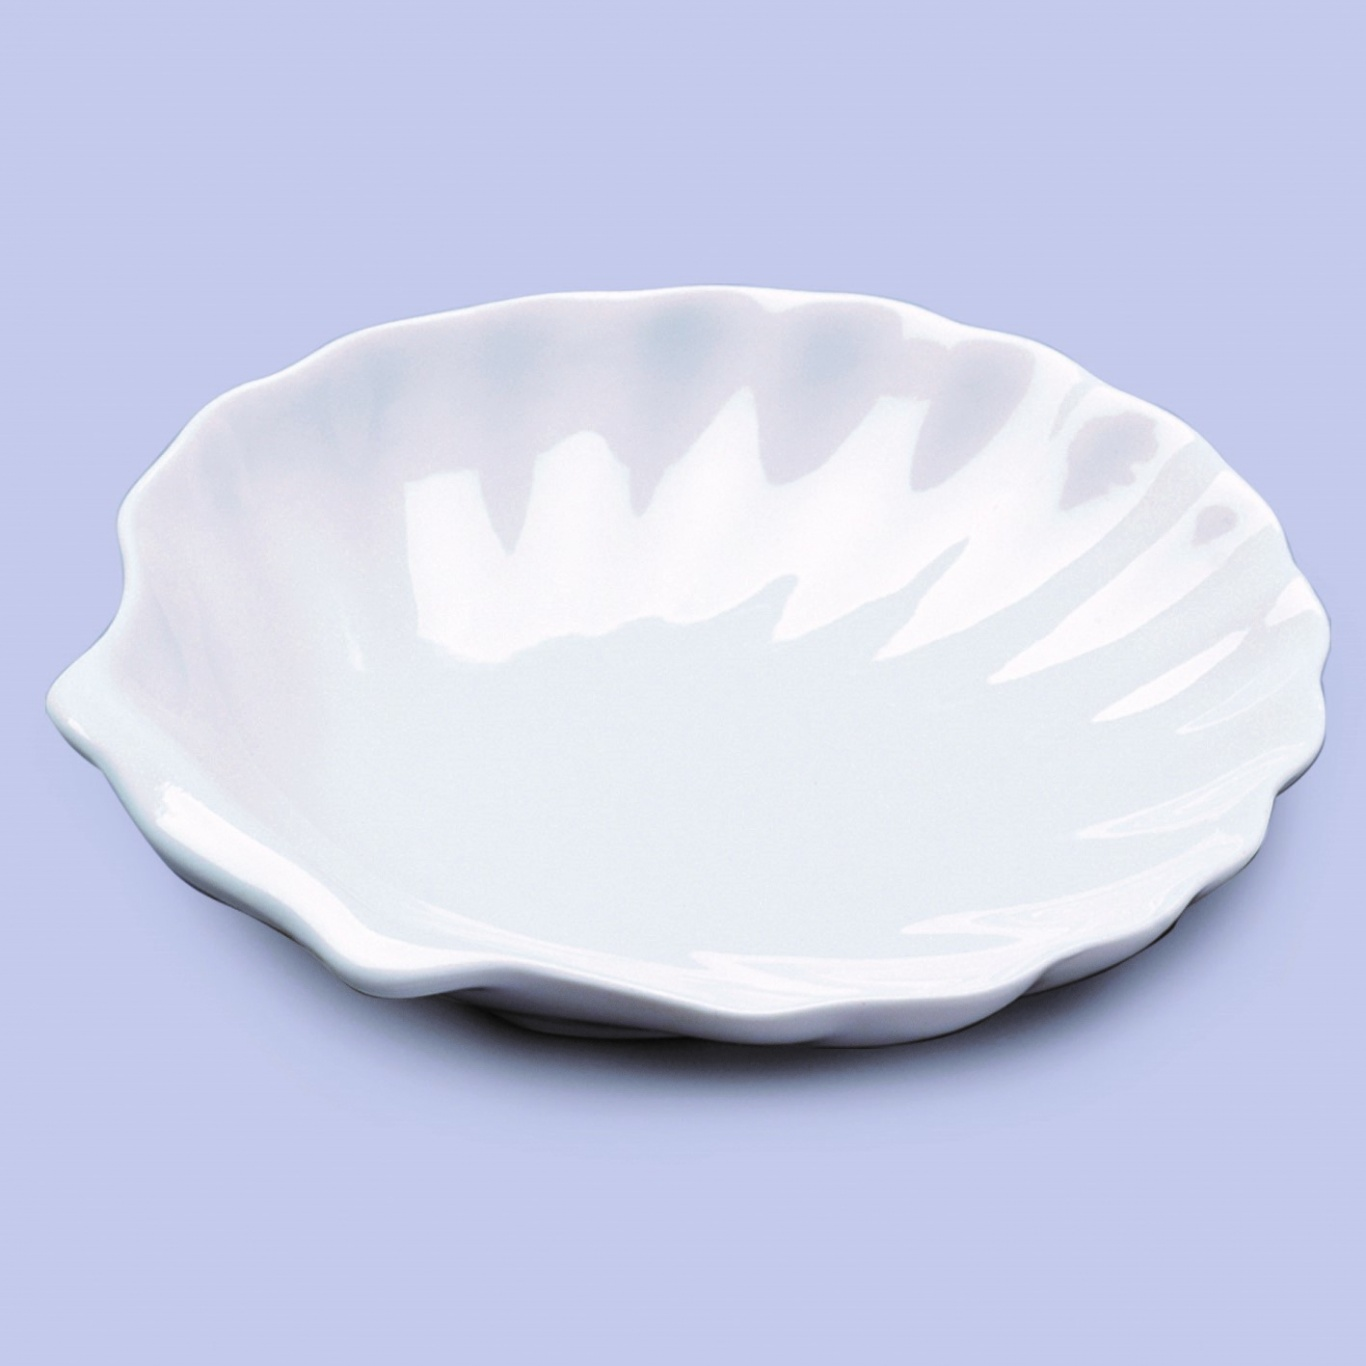 Image of Standard Shell Dish